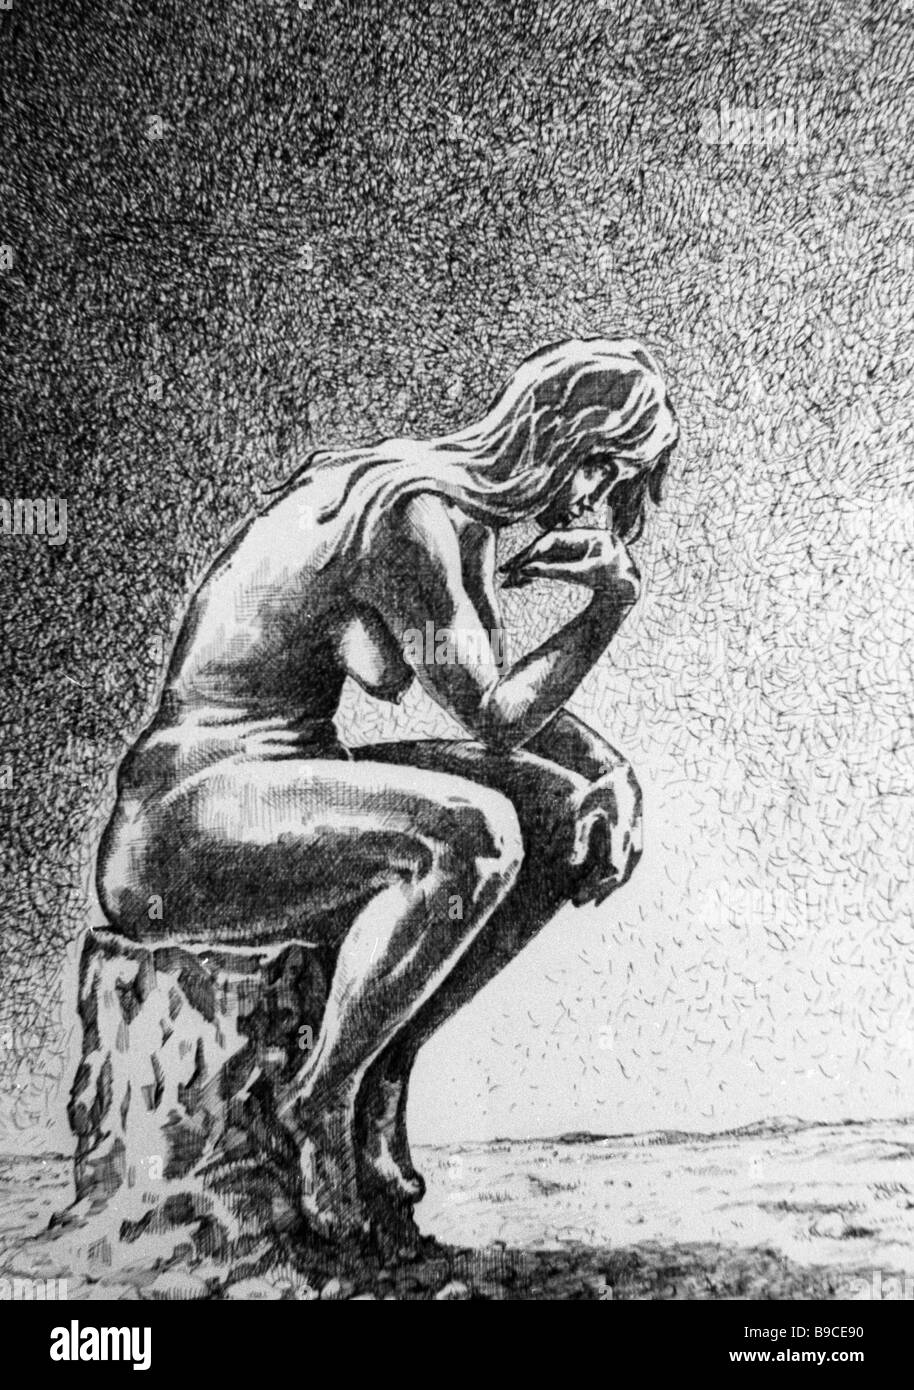 Reproduction of drawing Woman Thinker by Igor Smirnov - Stock Image